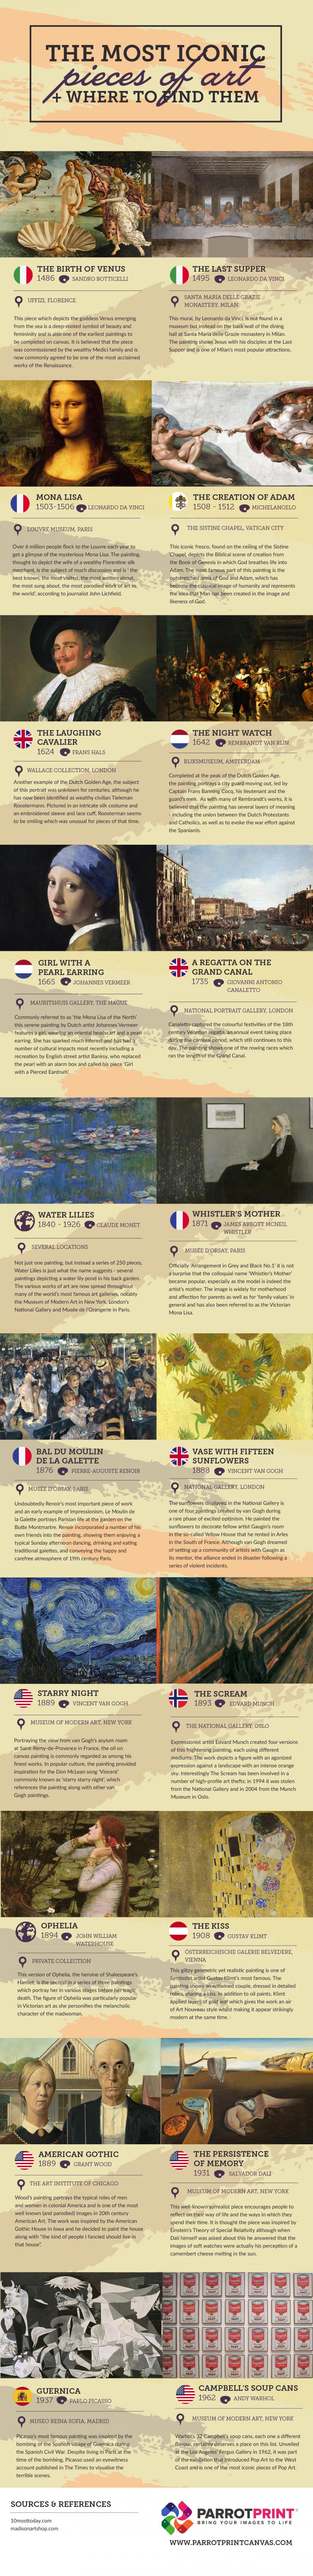 The Most Iconic Pieces of Art & Where to Find Them Infographic